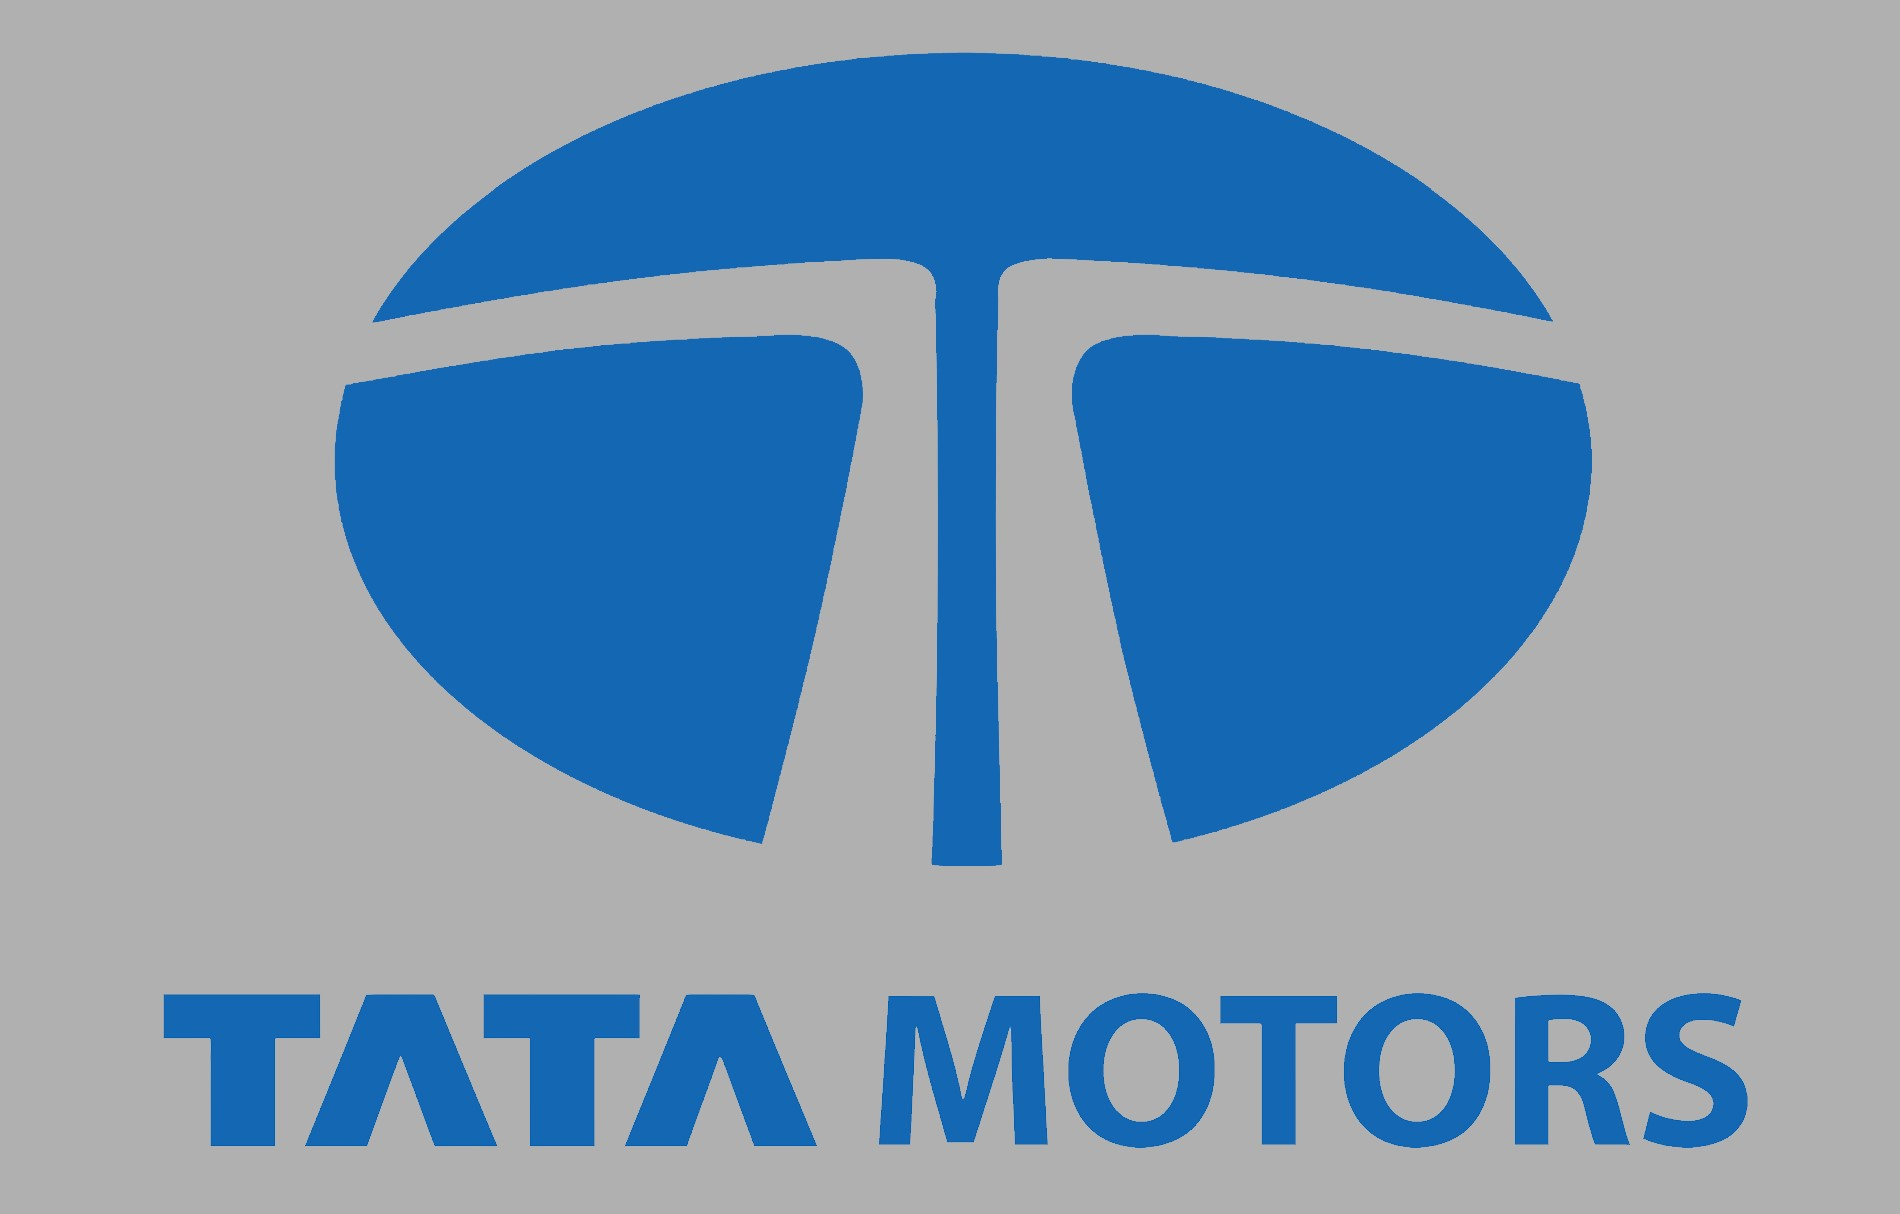 Tata Motors ties up with private lenders for commercial vehicles financing